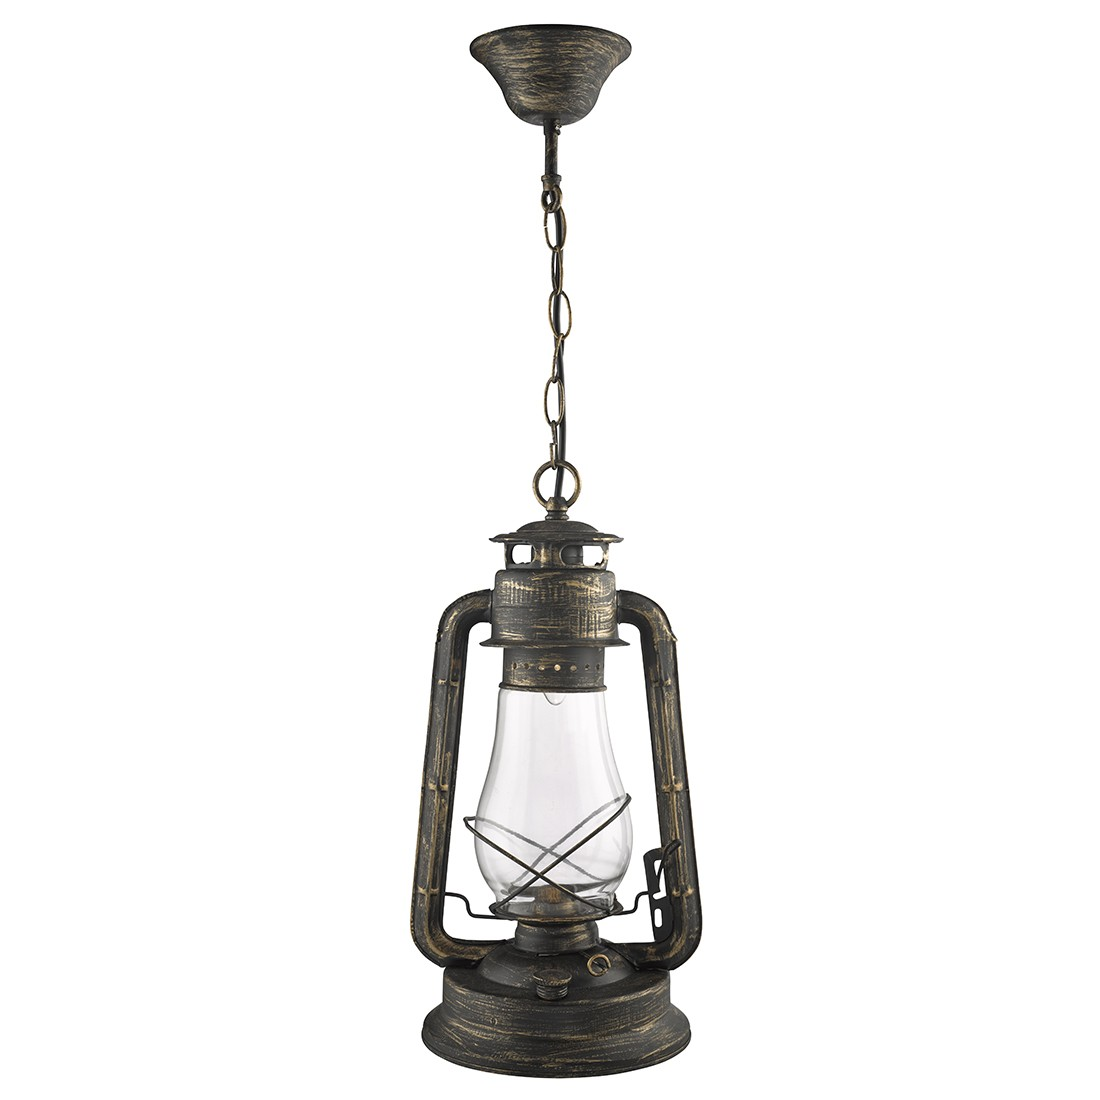 HURRICANE LANTERN PENDANT LIGHT IN BLACK GOLD WITH CLEAR FUNNEL GLASS 4842 1BG